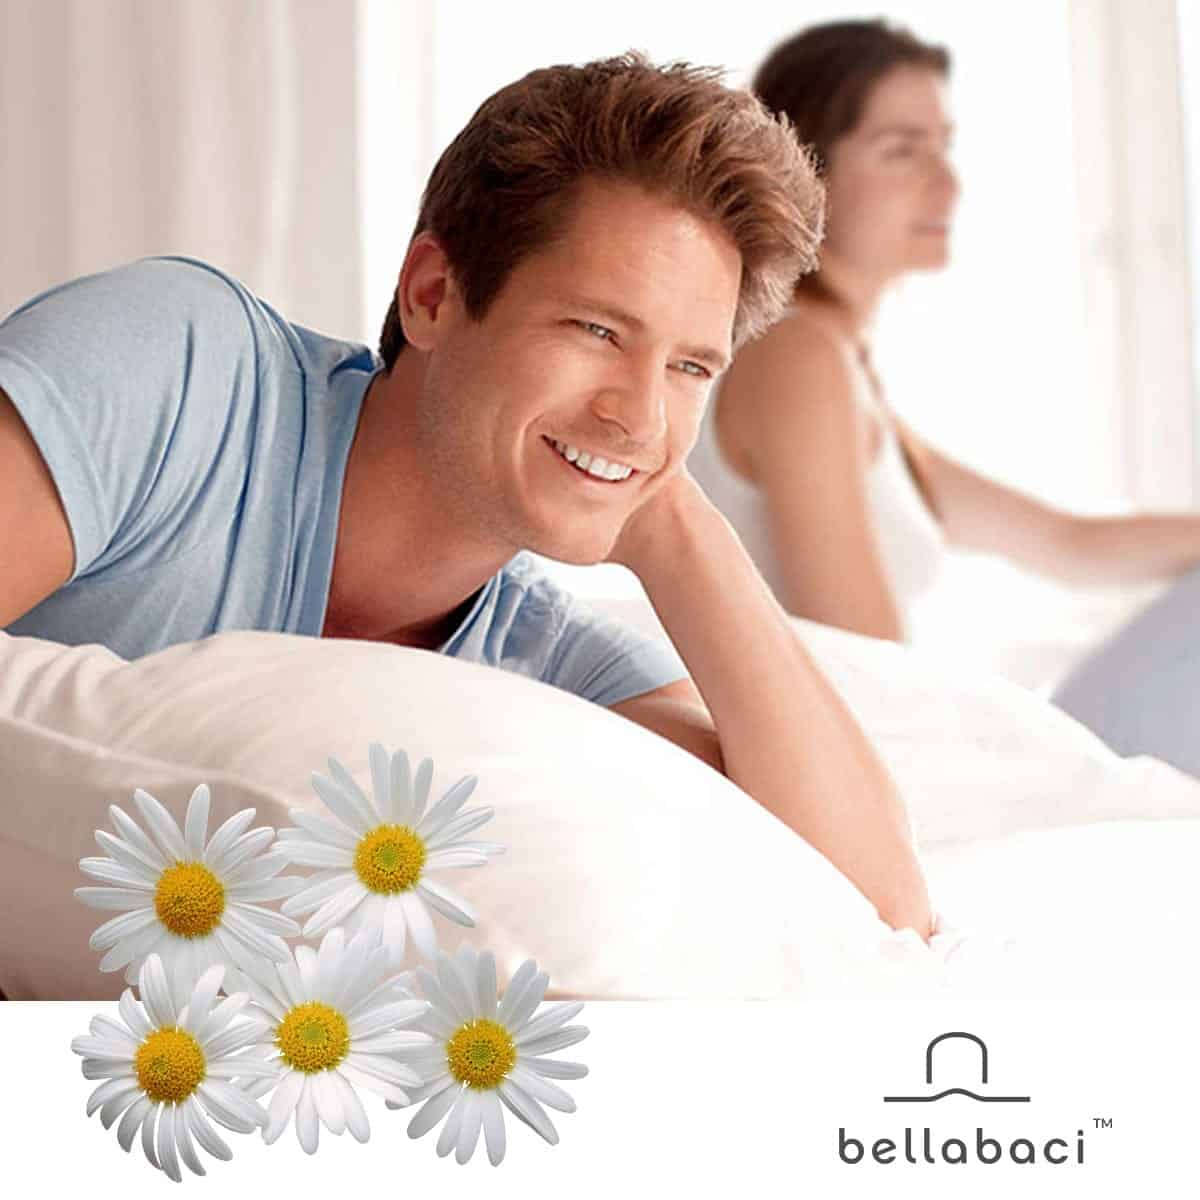 Use Chamomile Essential Oil for so much more than relaxation! - By Bellabaci INT